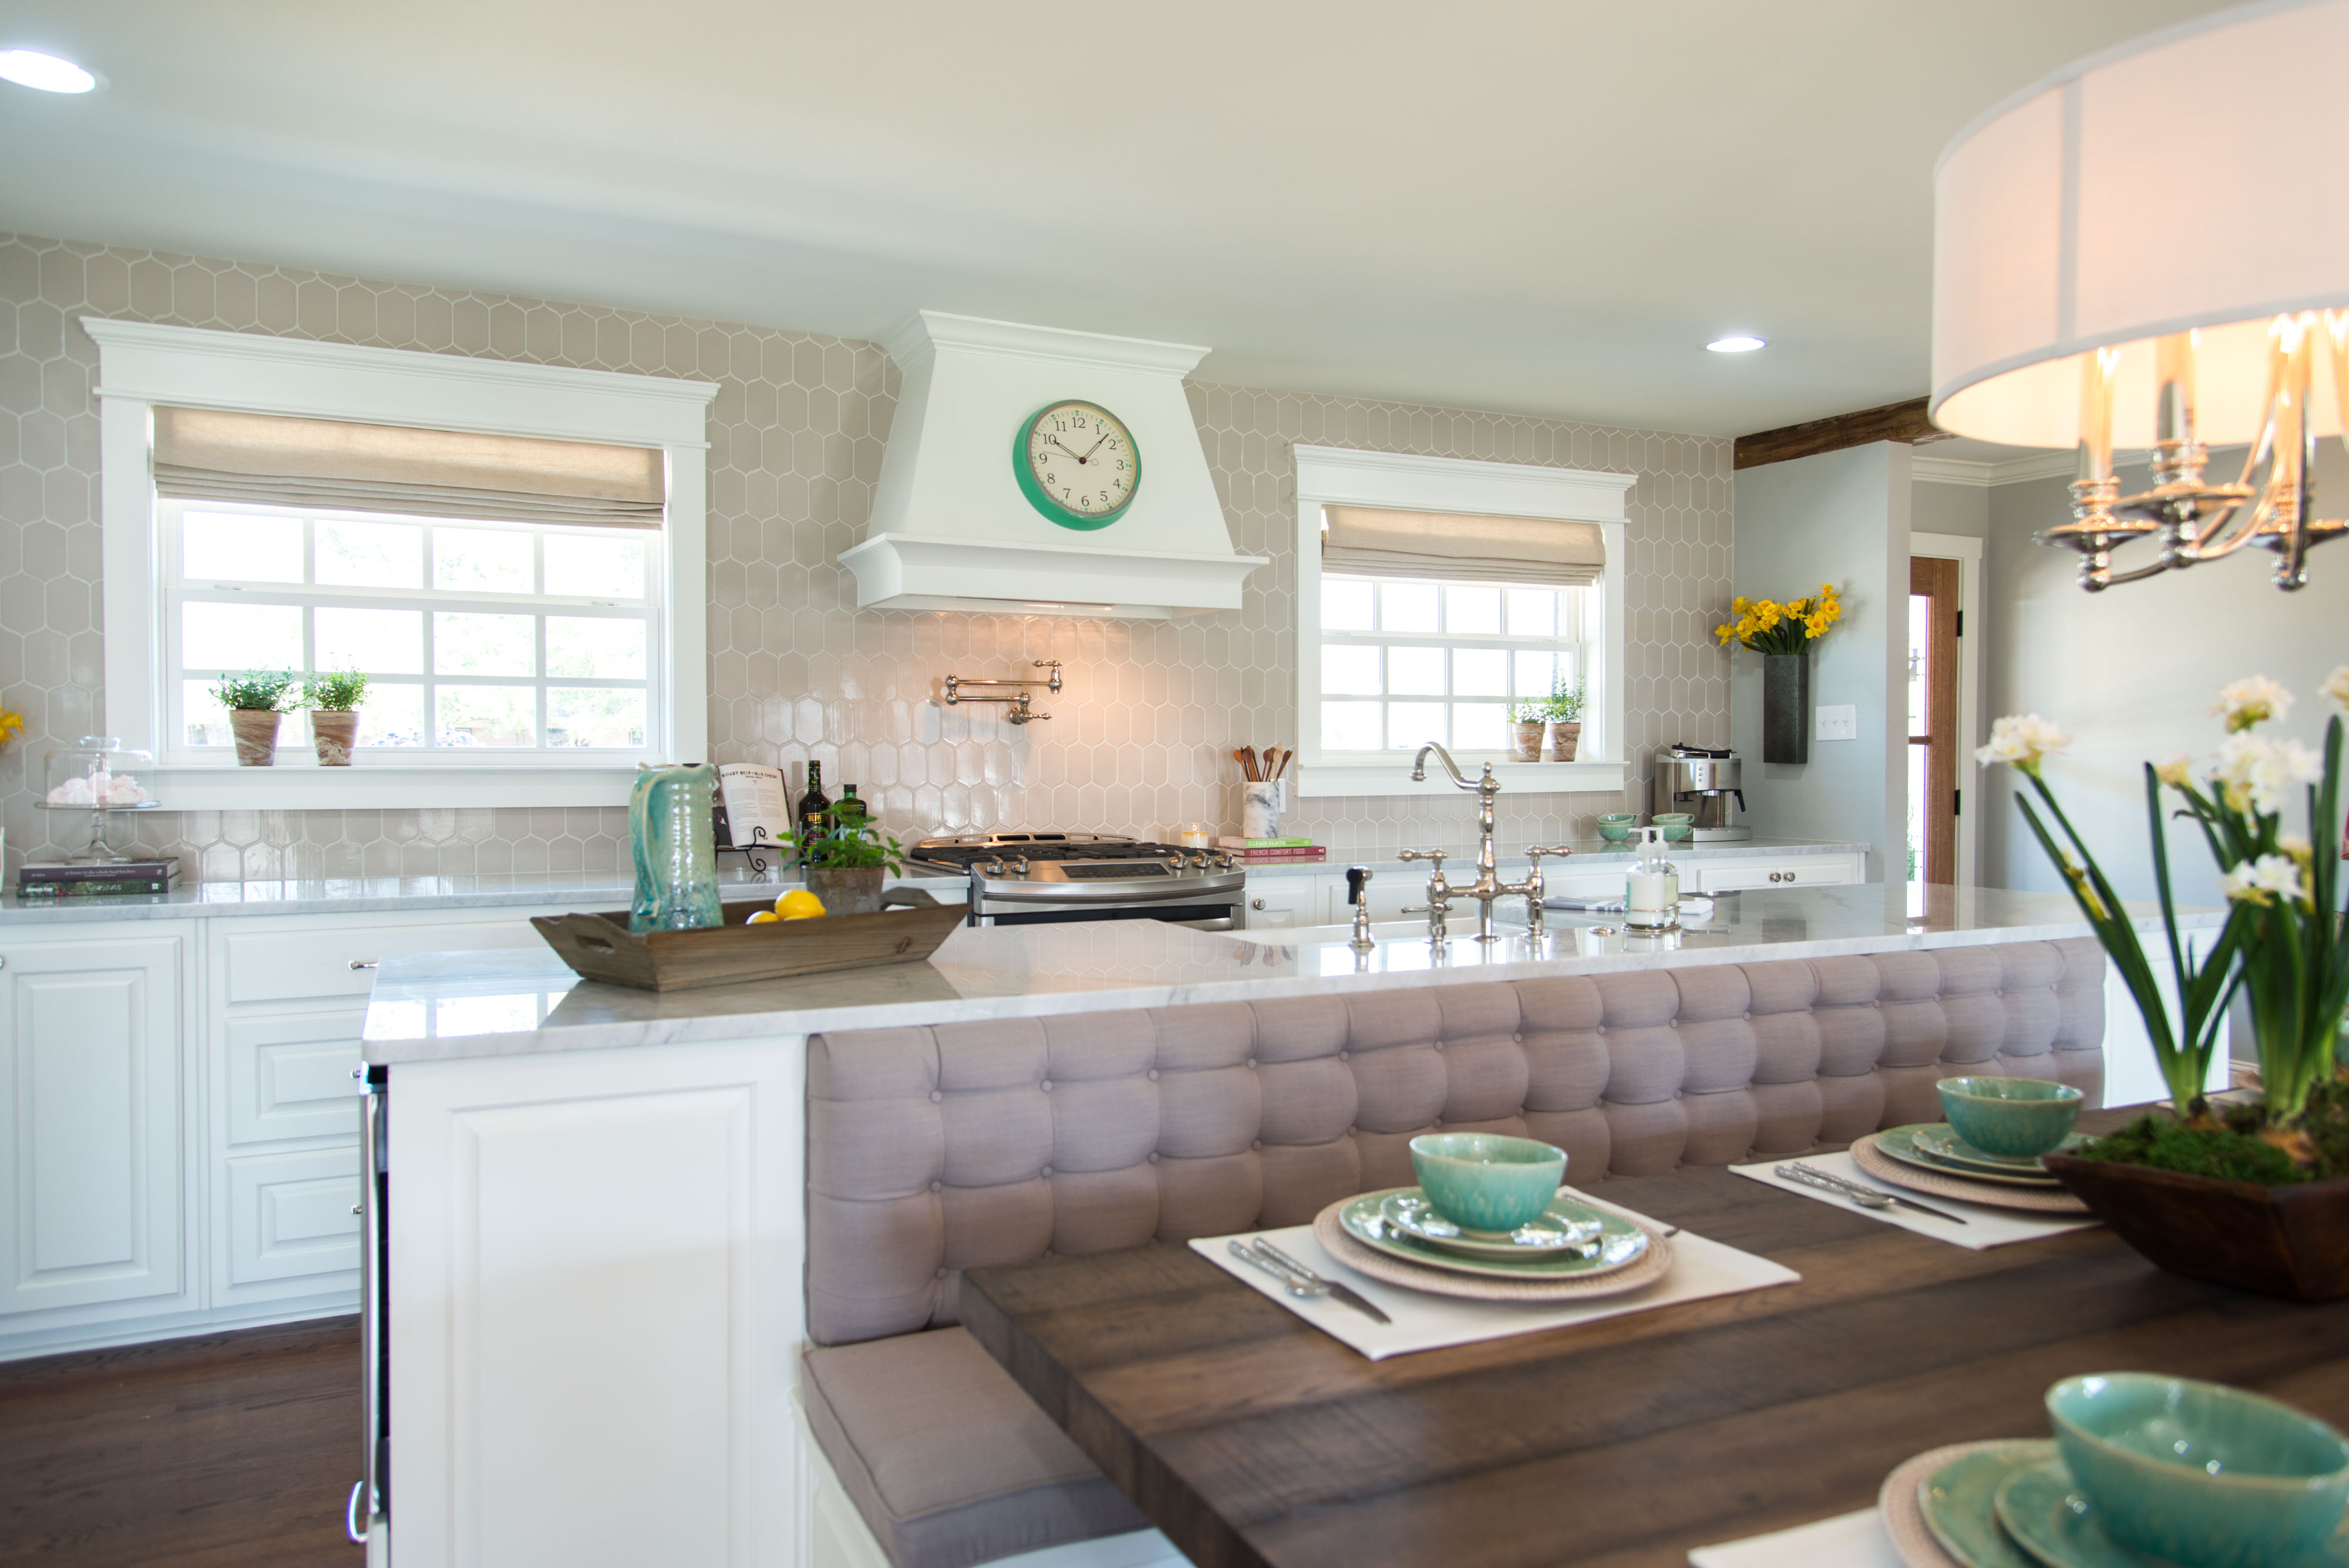 Fullsize Of Kitchen Islands With Bench Seating